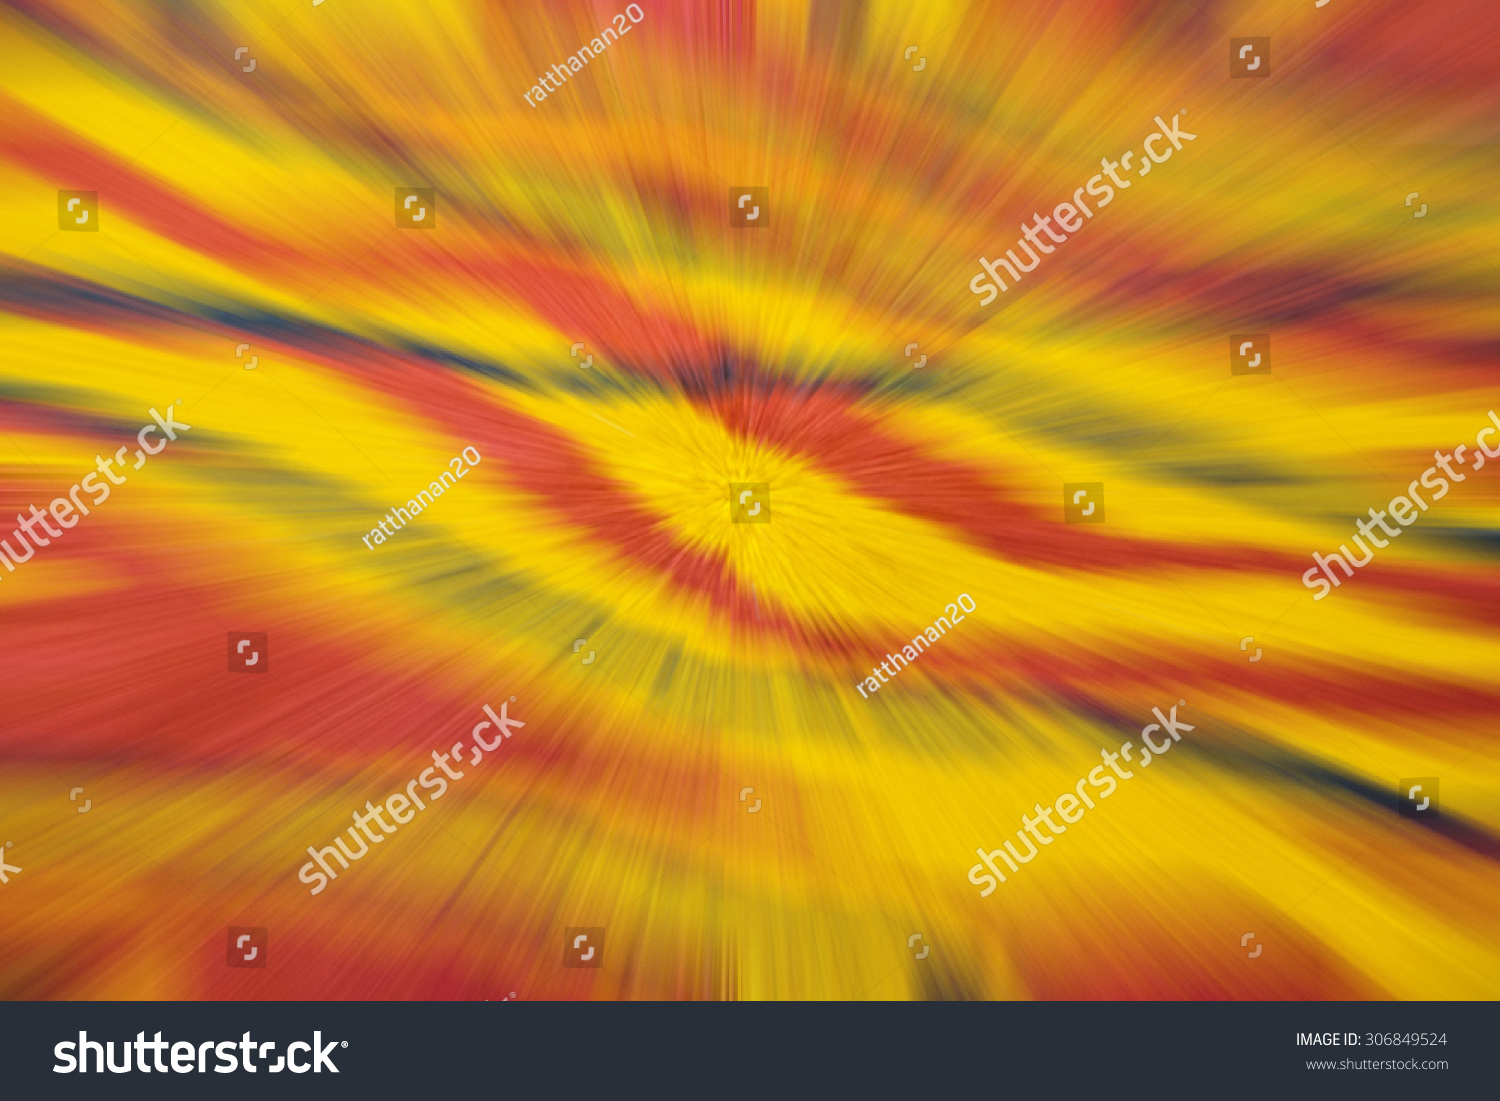 stock photo zoom blur effect abstract background with colorful shades of orange yellow black and red